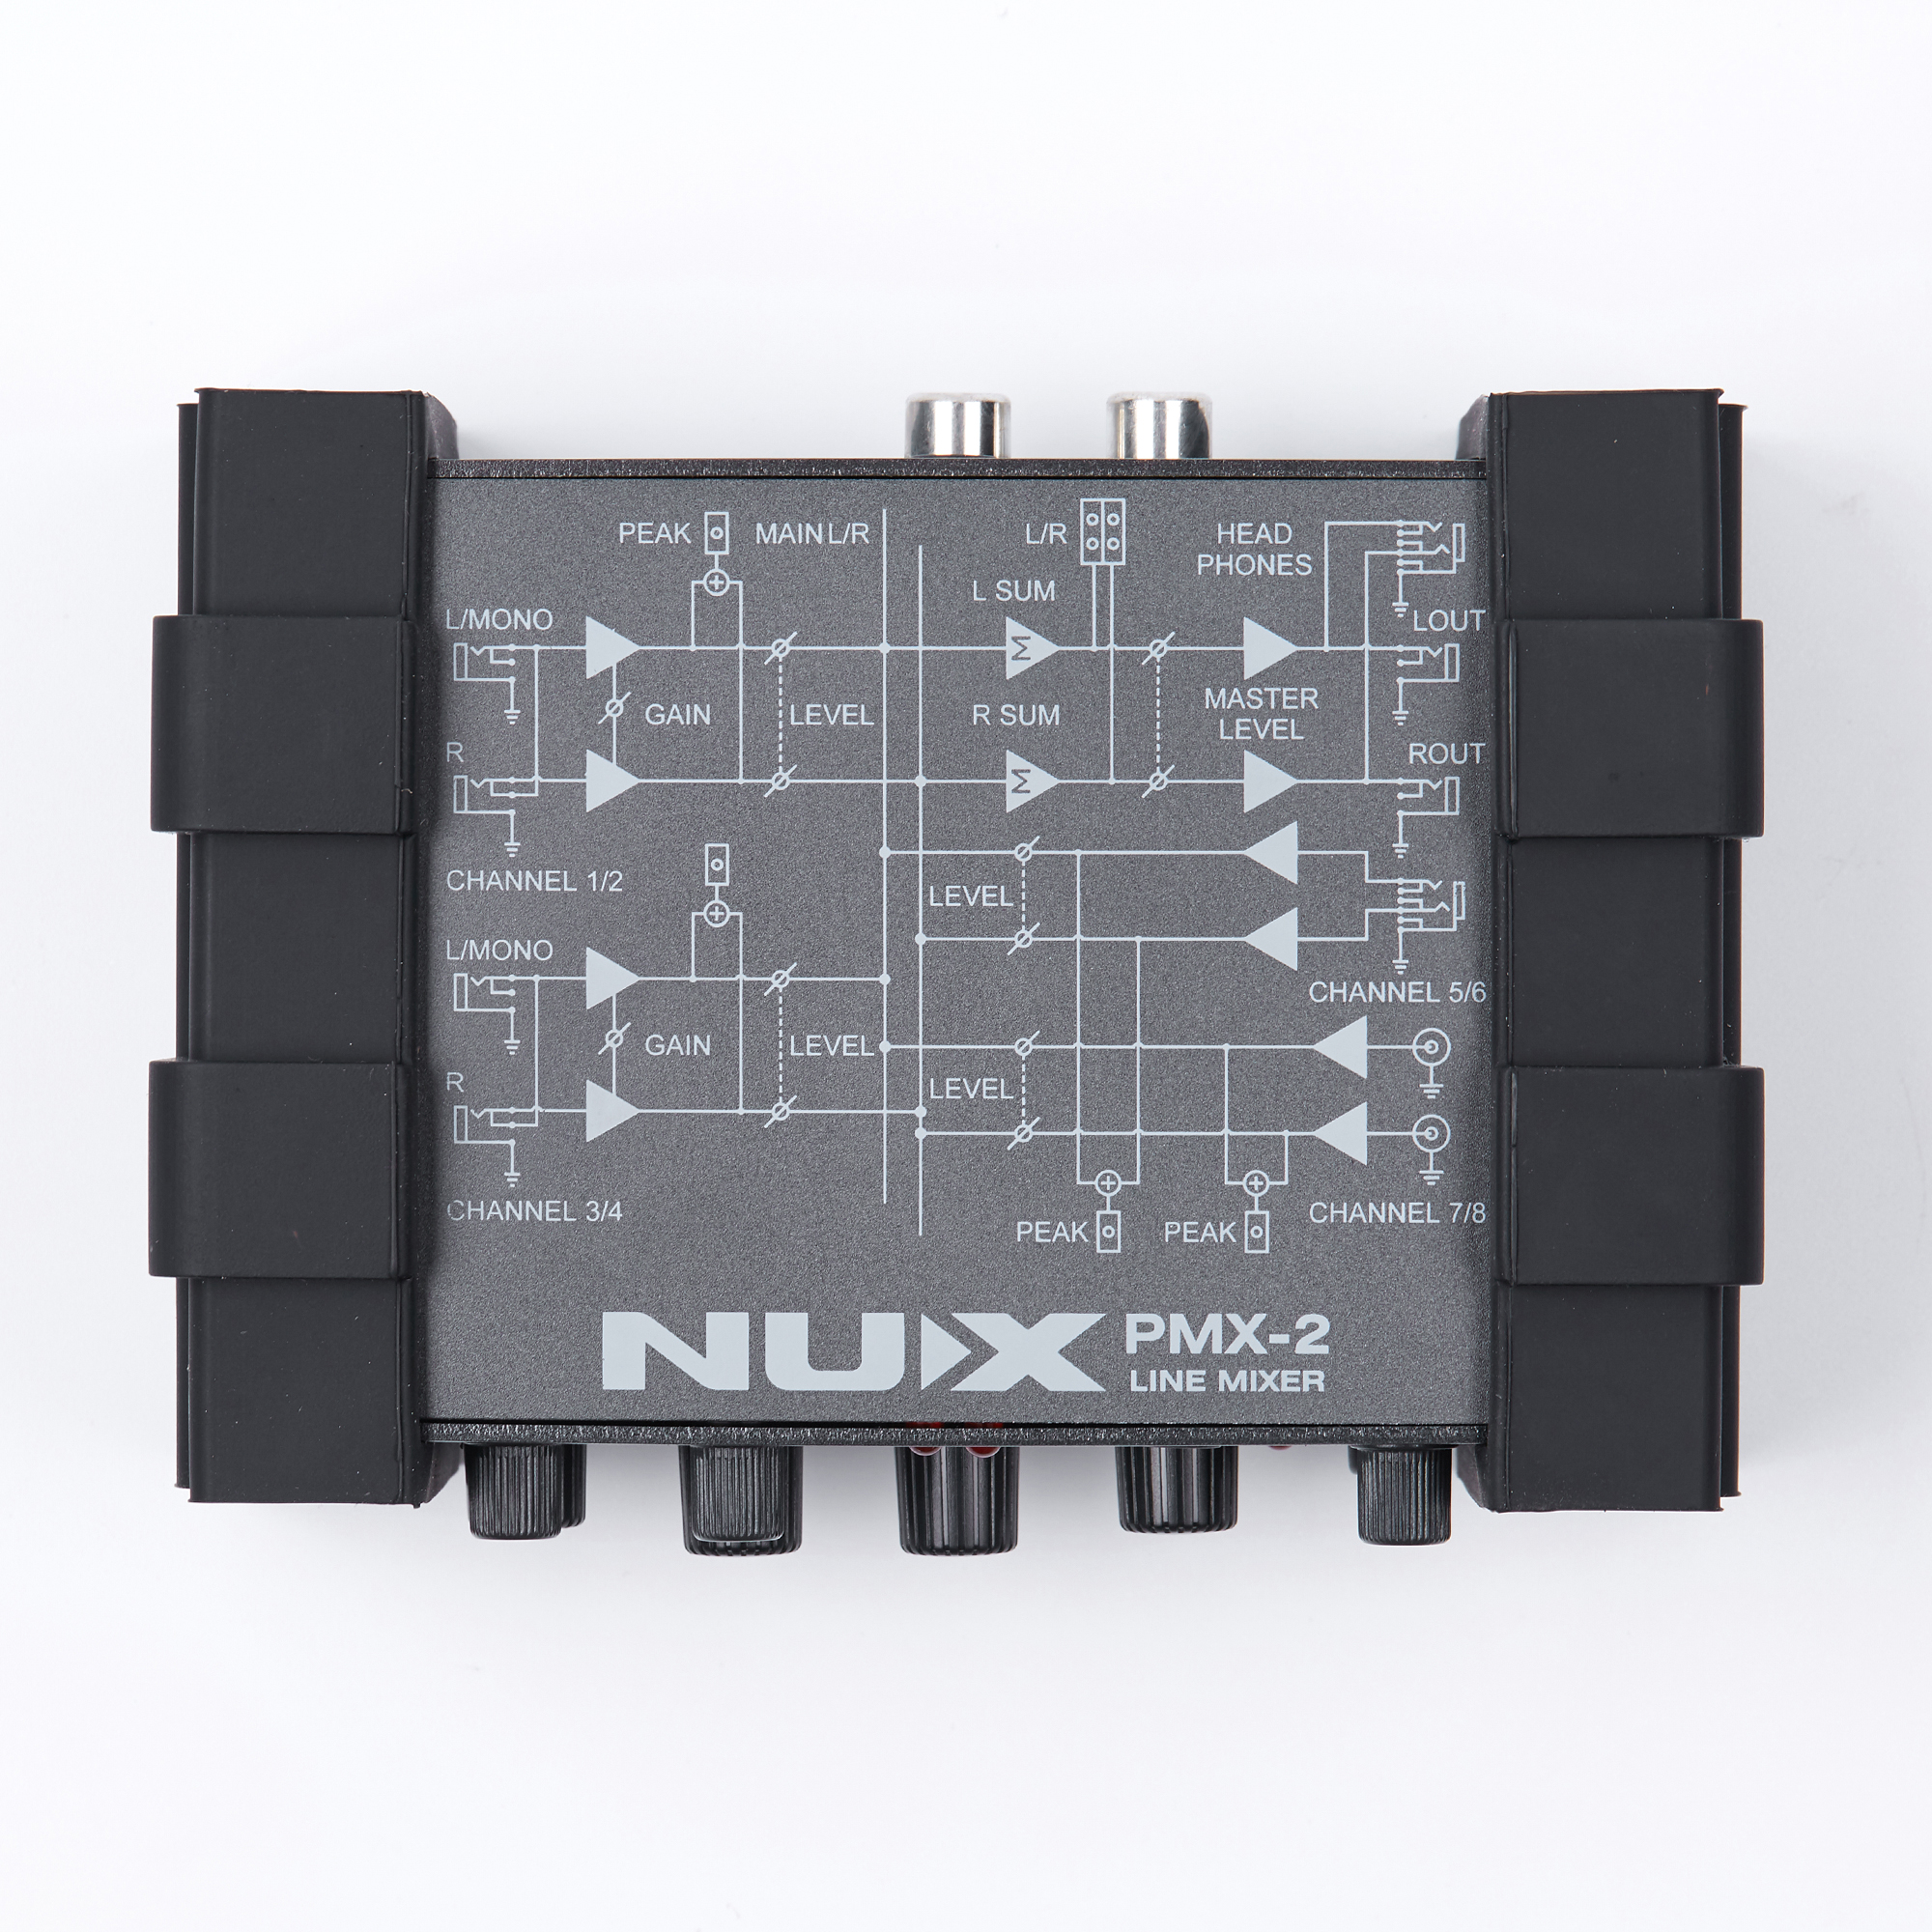 Gain Control 8 Inputs and 2 Outputs NUX PMX-2 Multi-Channel Mini Mixer 30 Musical Instruments Accessories for Guitar Bass Player plus